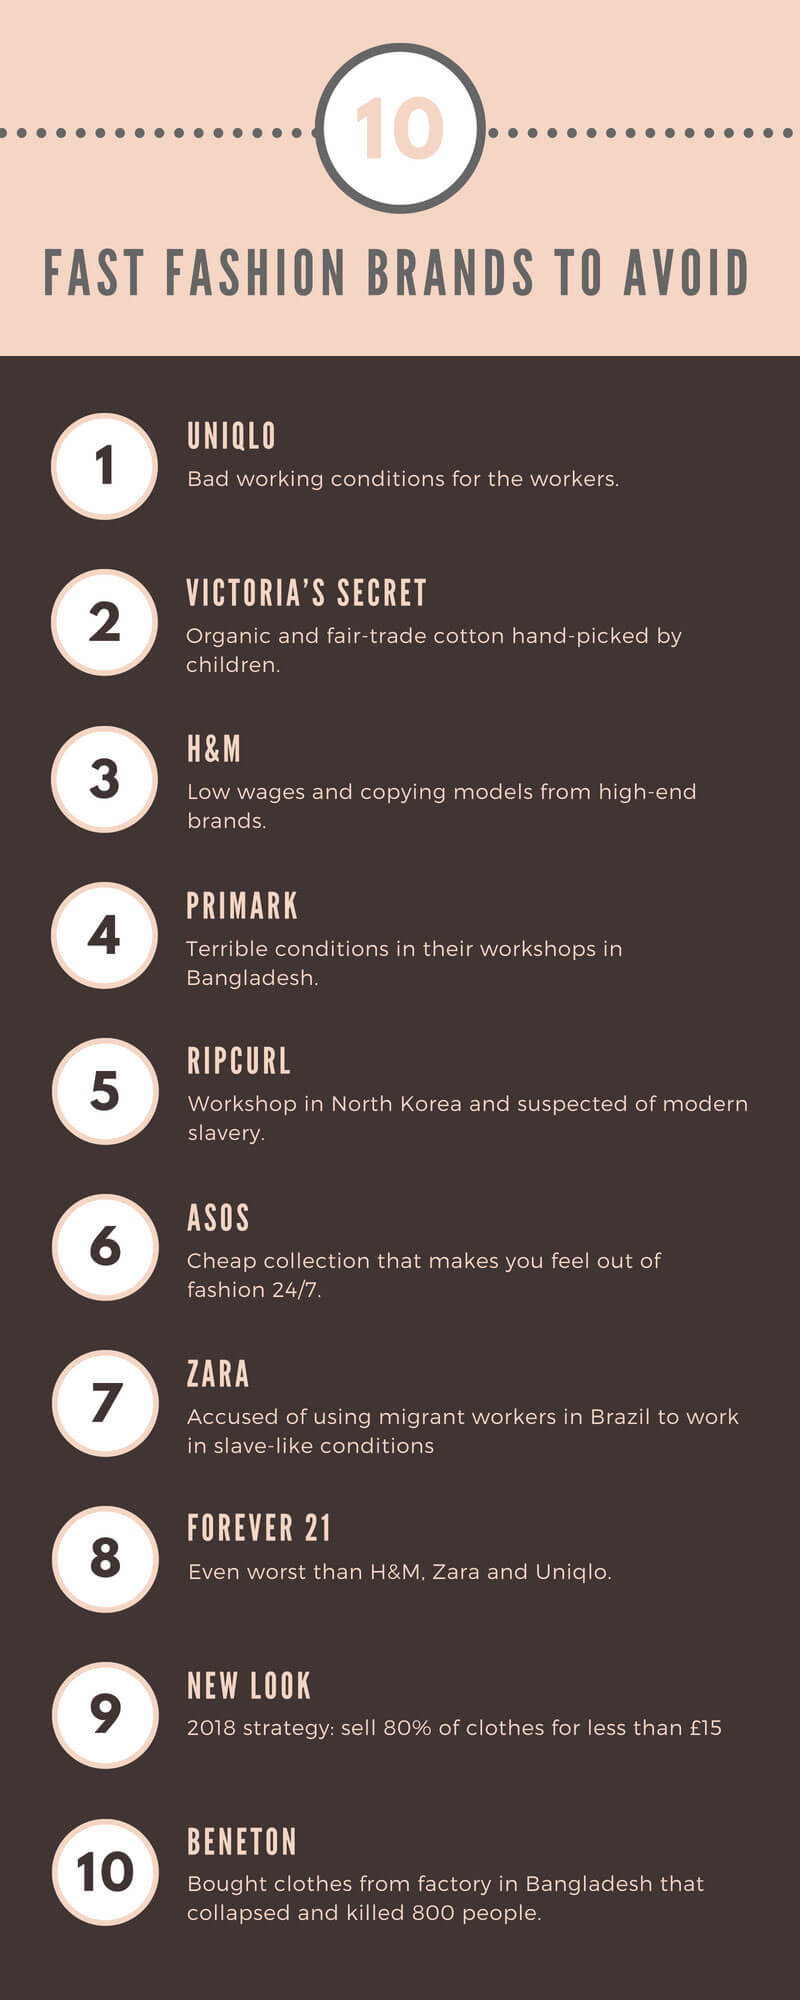 Fast Fashion Brands To Avoid List